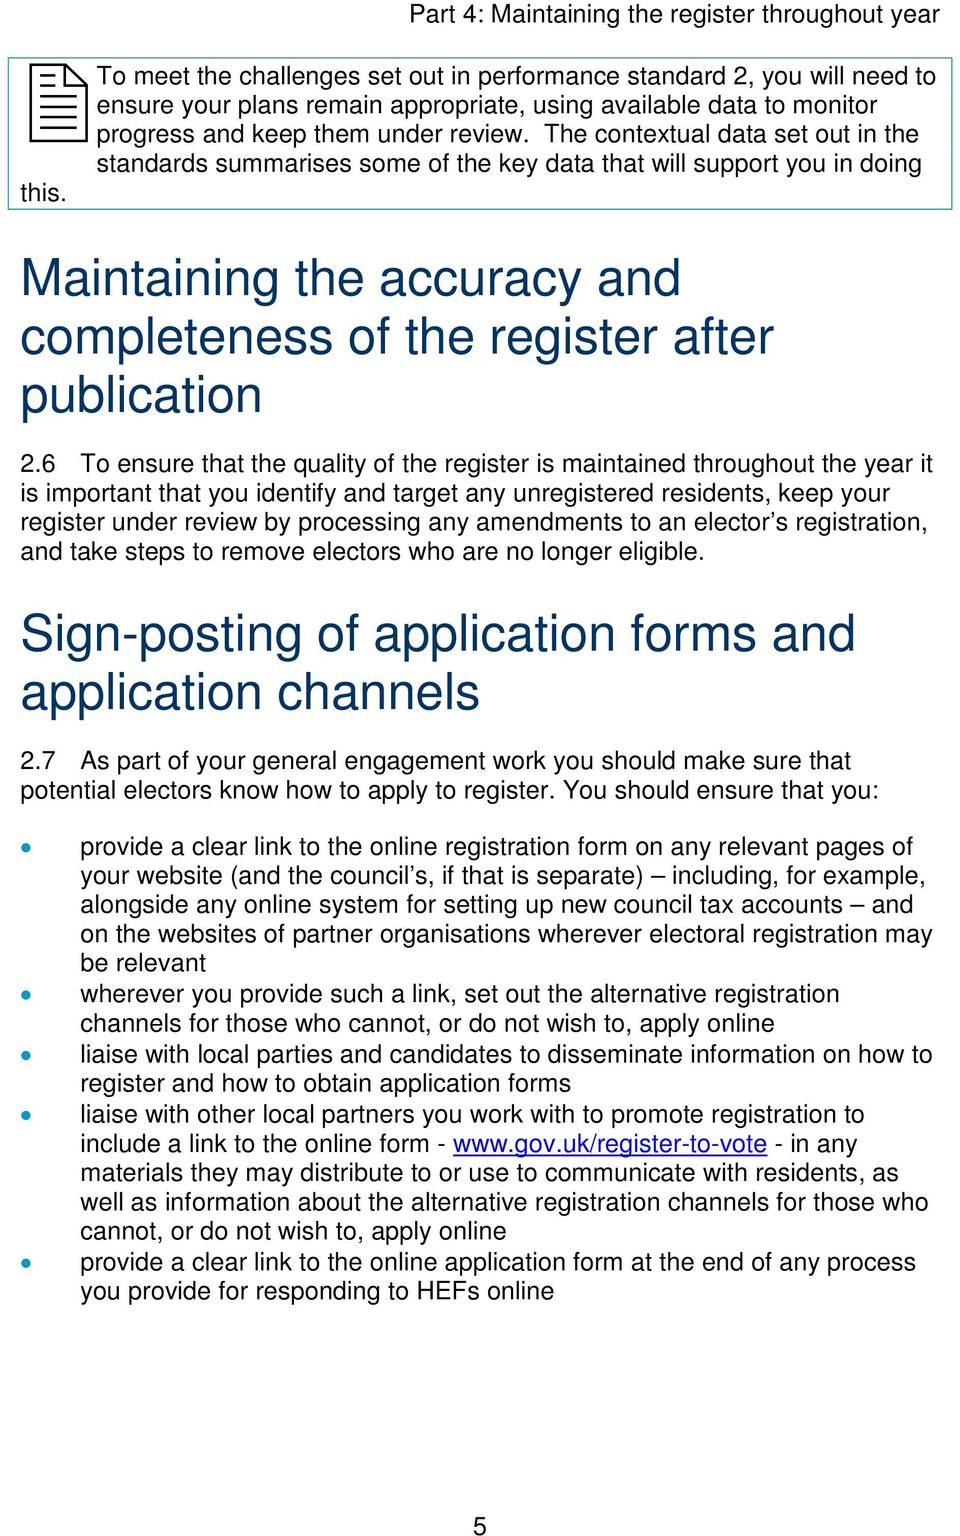 6 To ensure that the quality of the register is maintained throughout the year it is important that you identify and target any unregistered residents, keep your register under review by processing